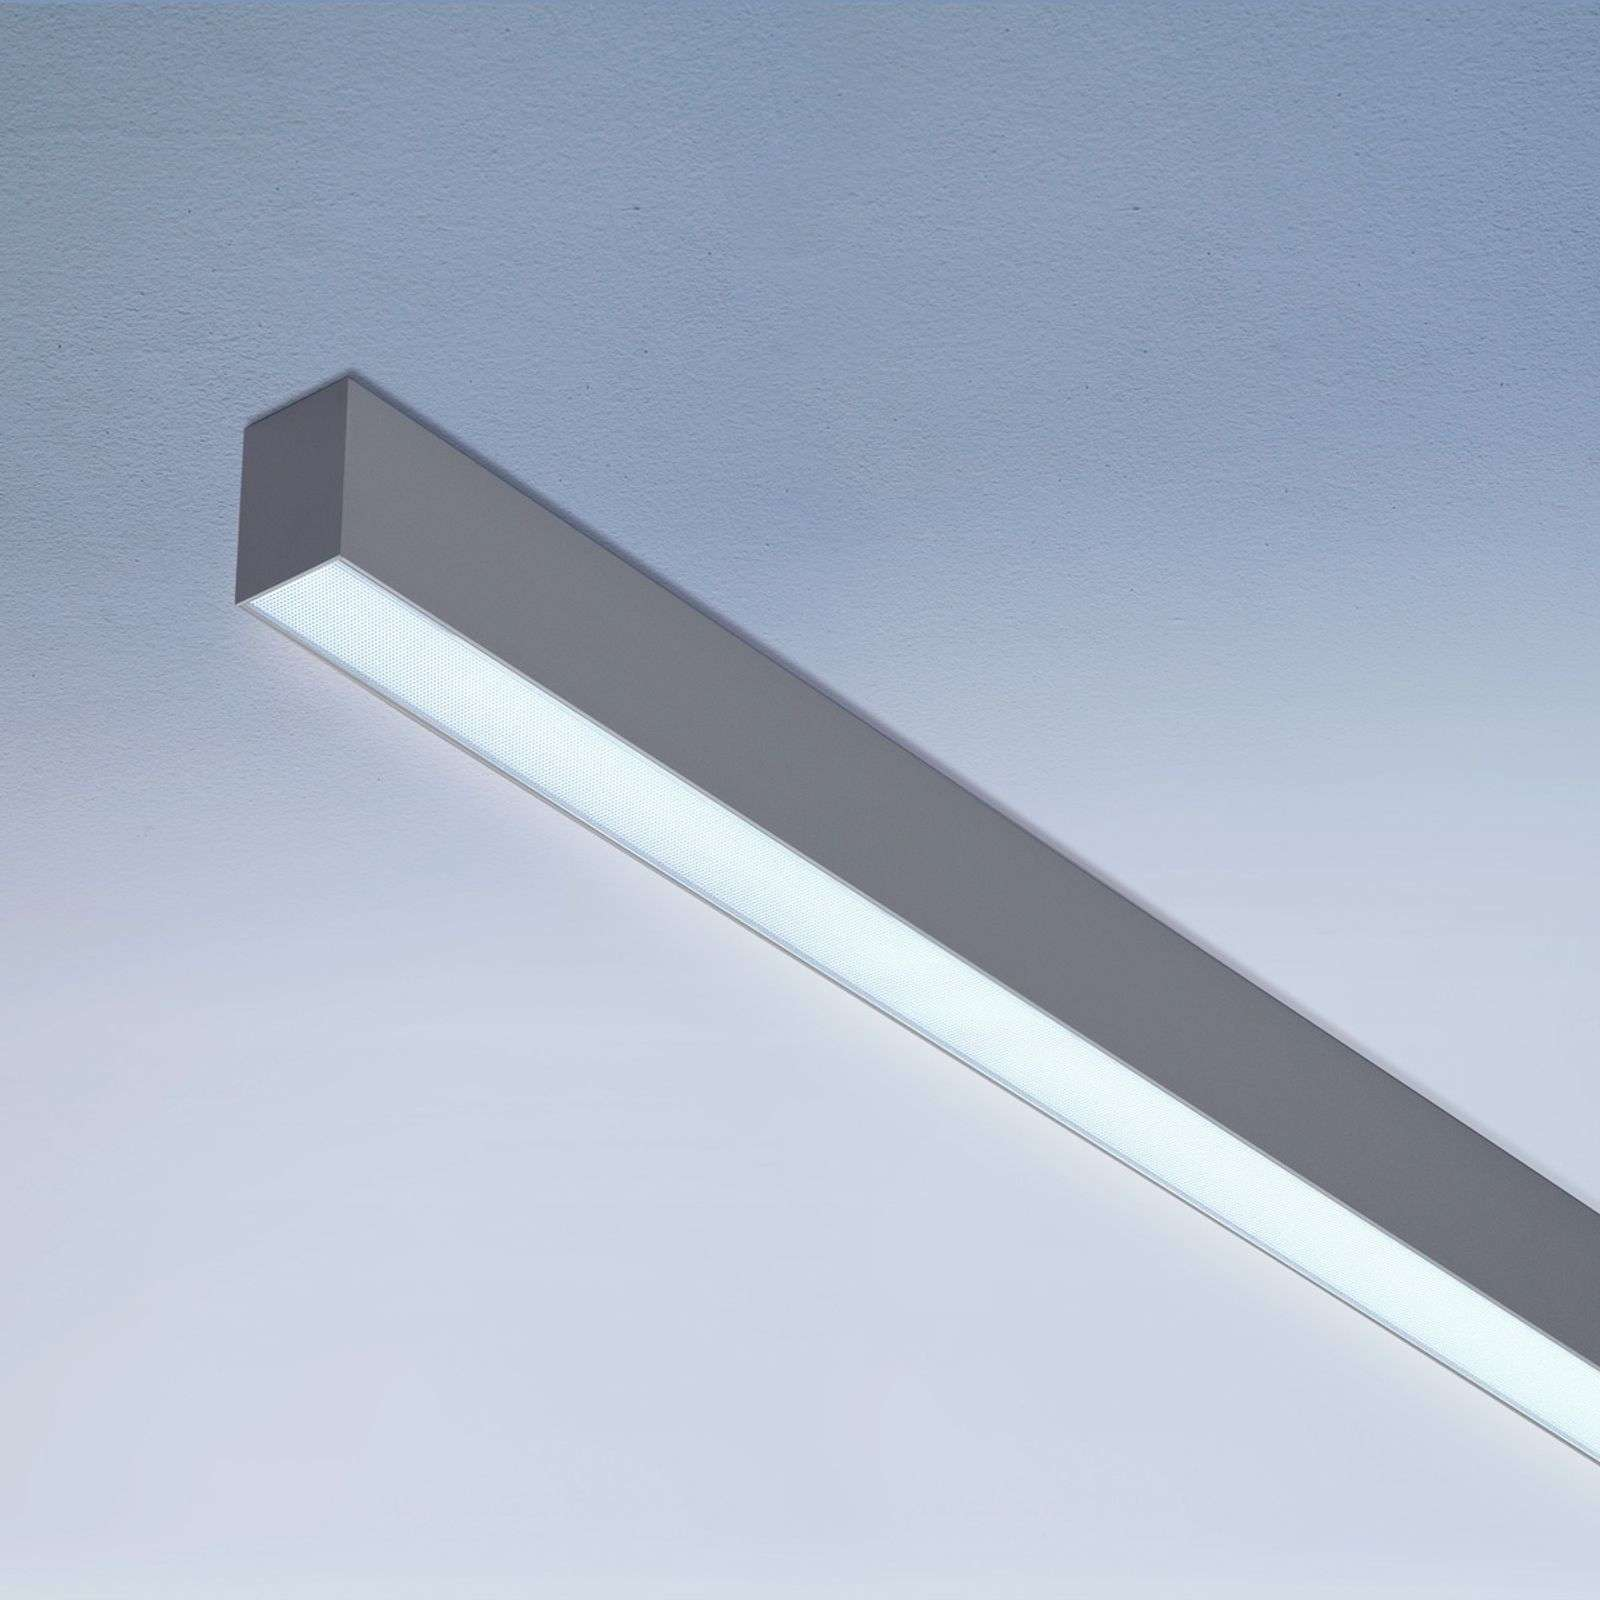 Medium Power - applique LED Matric-A3 293 cm